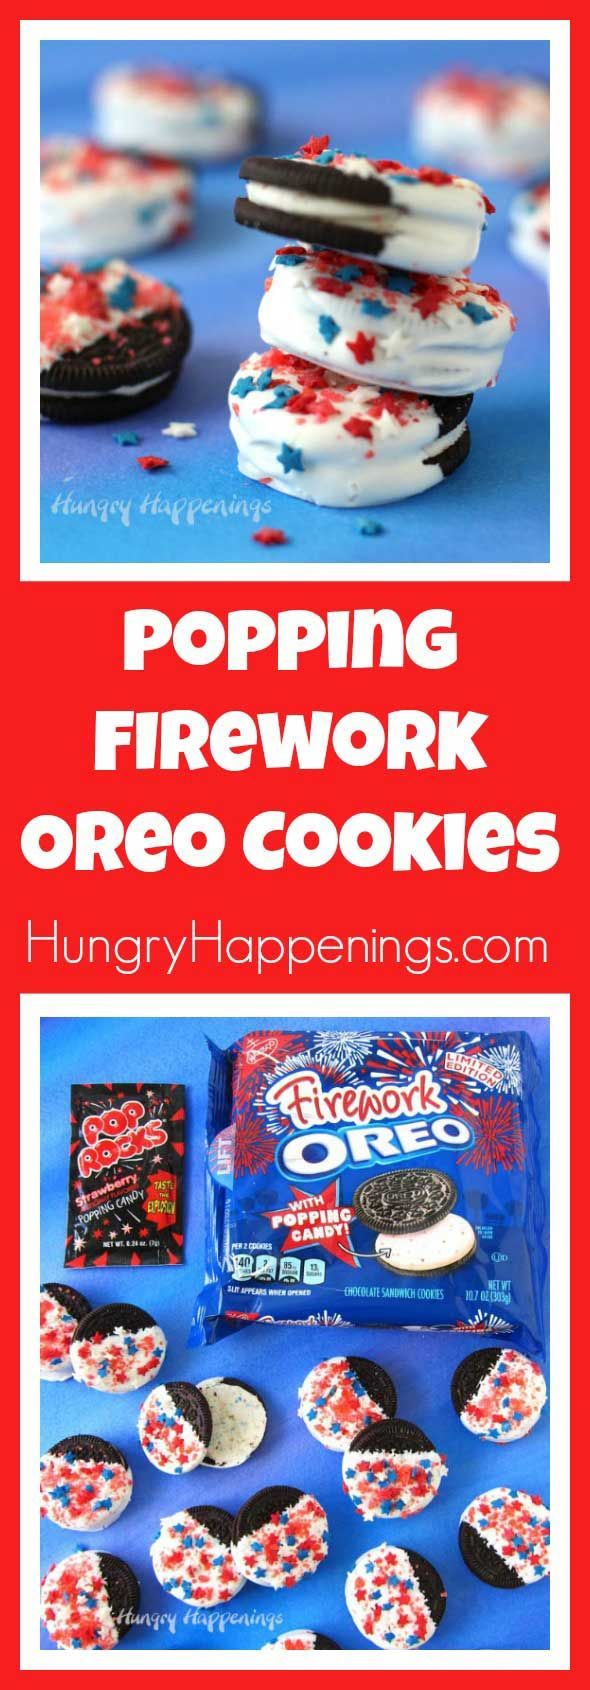 Celebrate Memorial Day, 4th of July or Labor Day with some double Popping Firework Oreo Cookies. With each bite, you'll enjoy the sweet sensation of fireworks popping in your mouth.